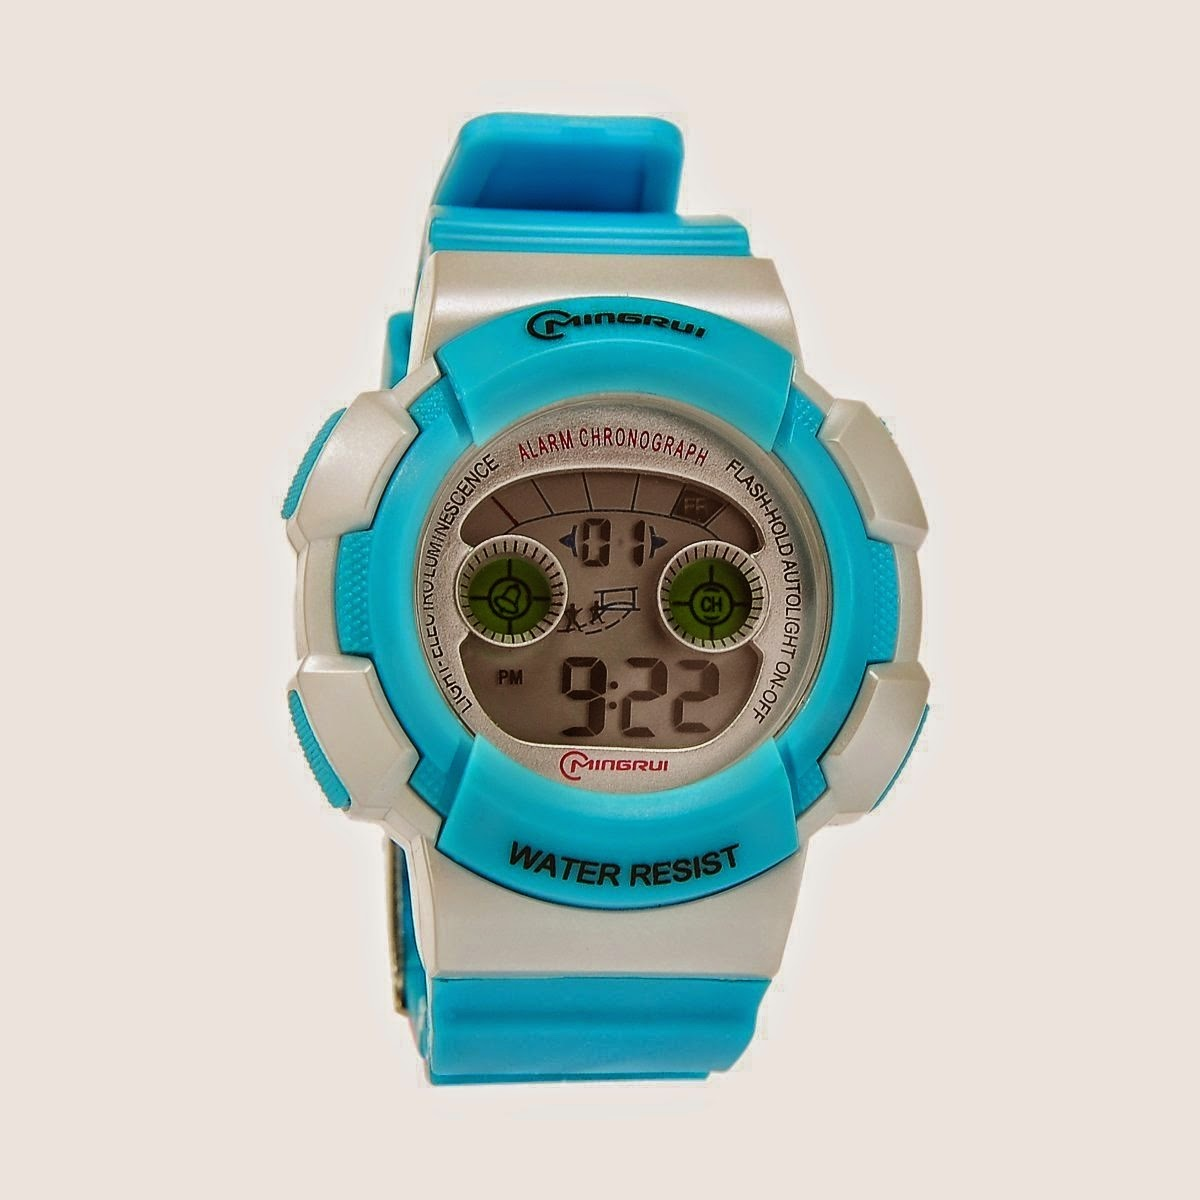 New fashion arrivals us sports water proof watches for kids latest prices for Watches for kids